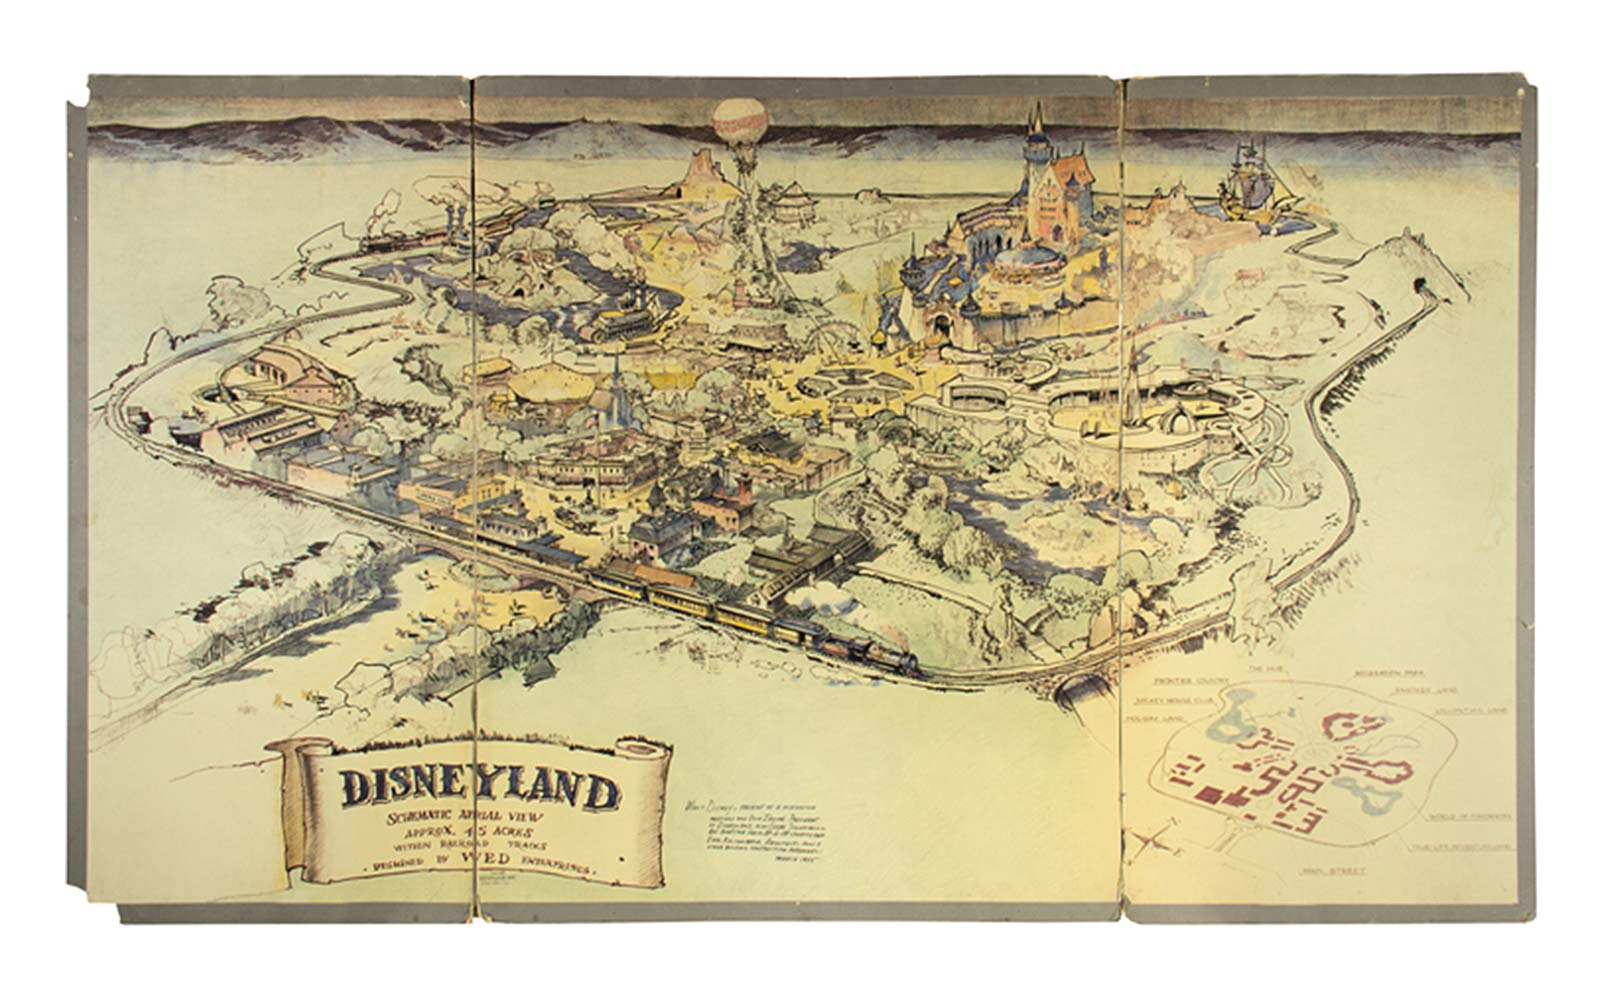 The Map of Disneyland That Walt Disney Designed in 1953 Is Going to Auction